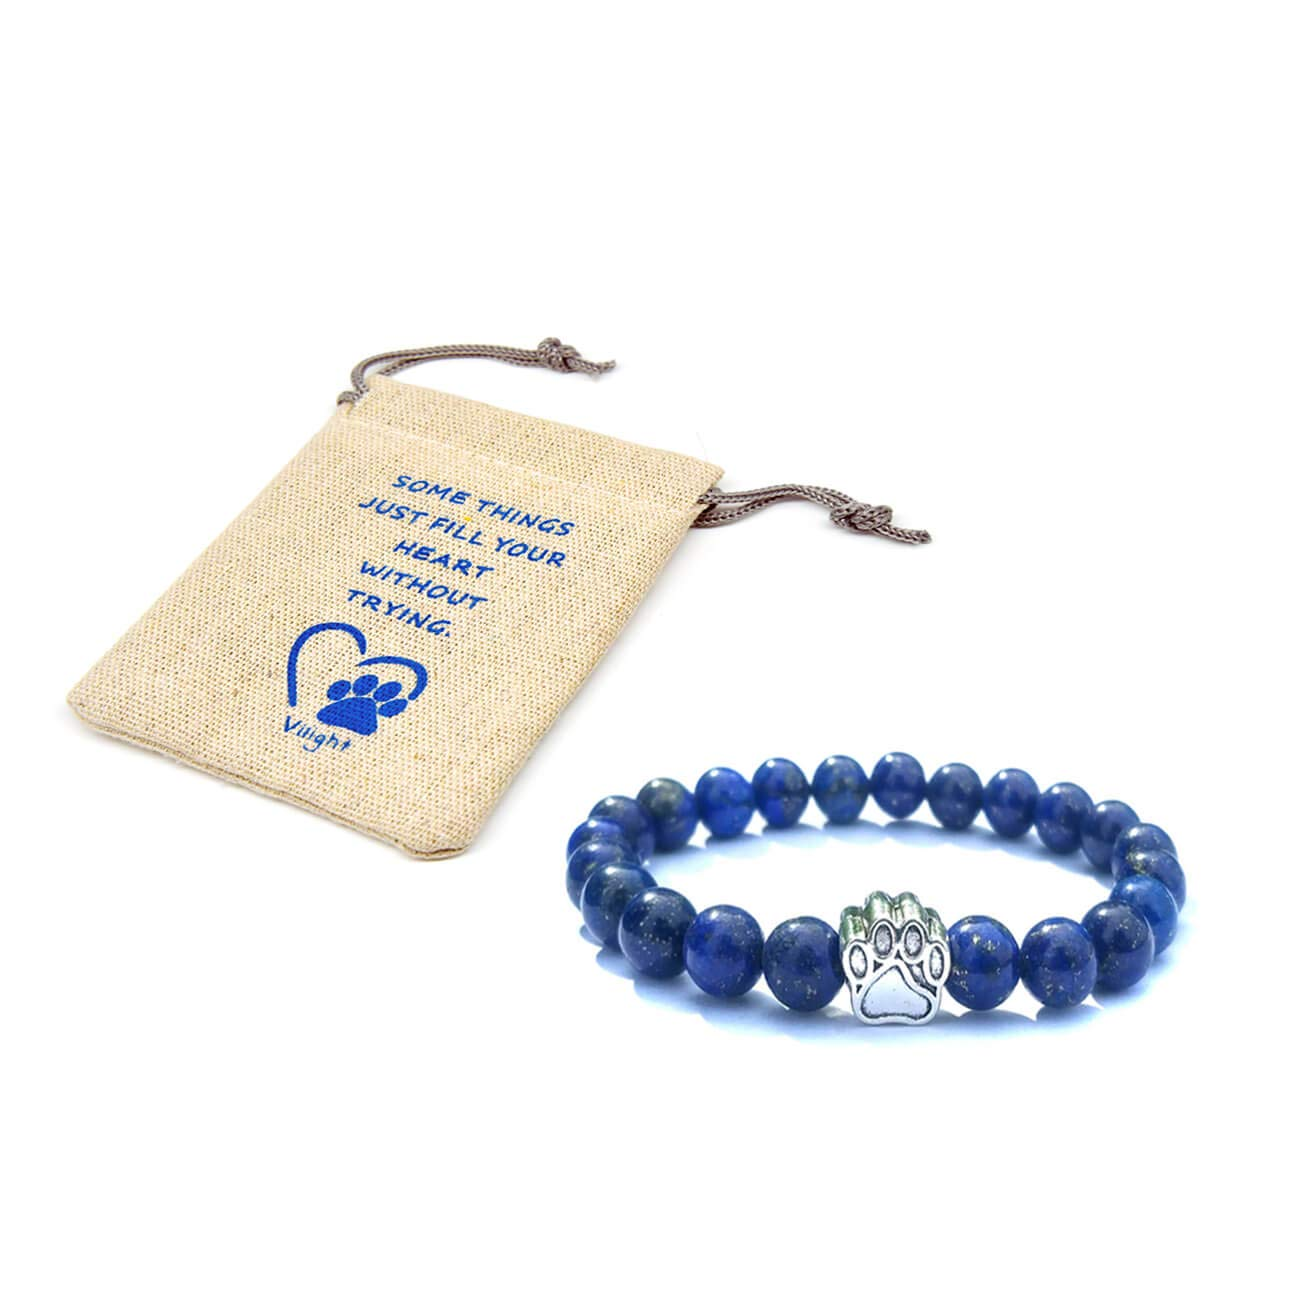 bluee VILIGHT Lost Pet Memorial Paw Print Natural Stone Bracelet Set Gifts for Loss of Dog Cat with Card and Package bluee